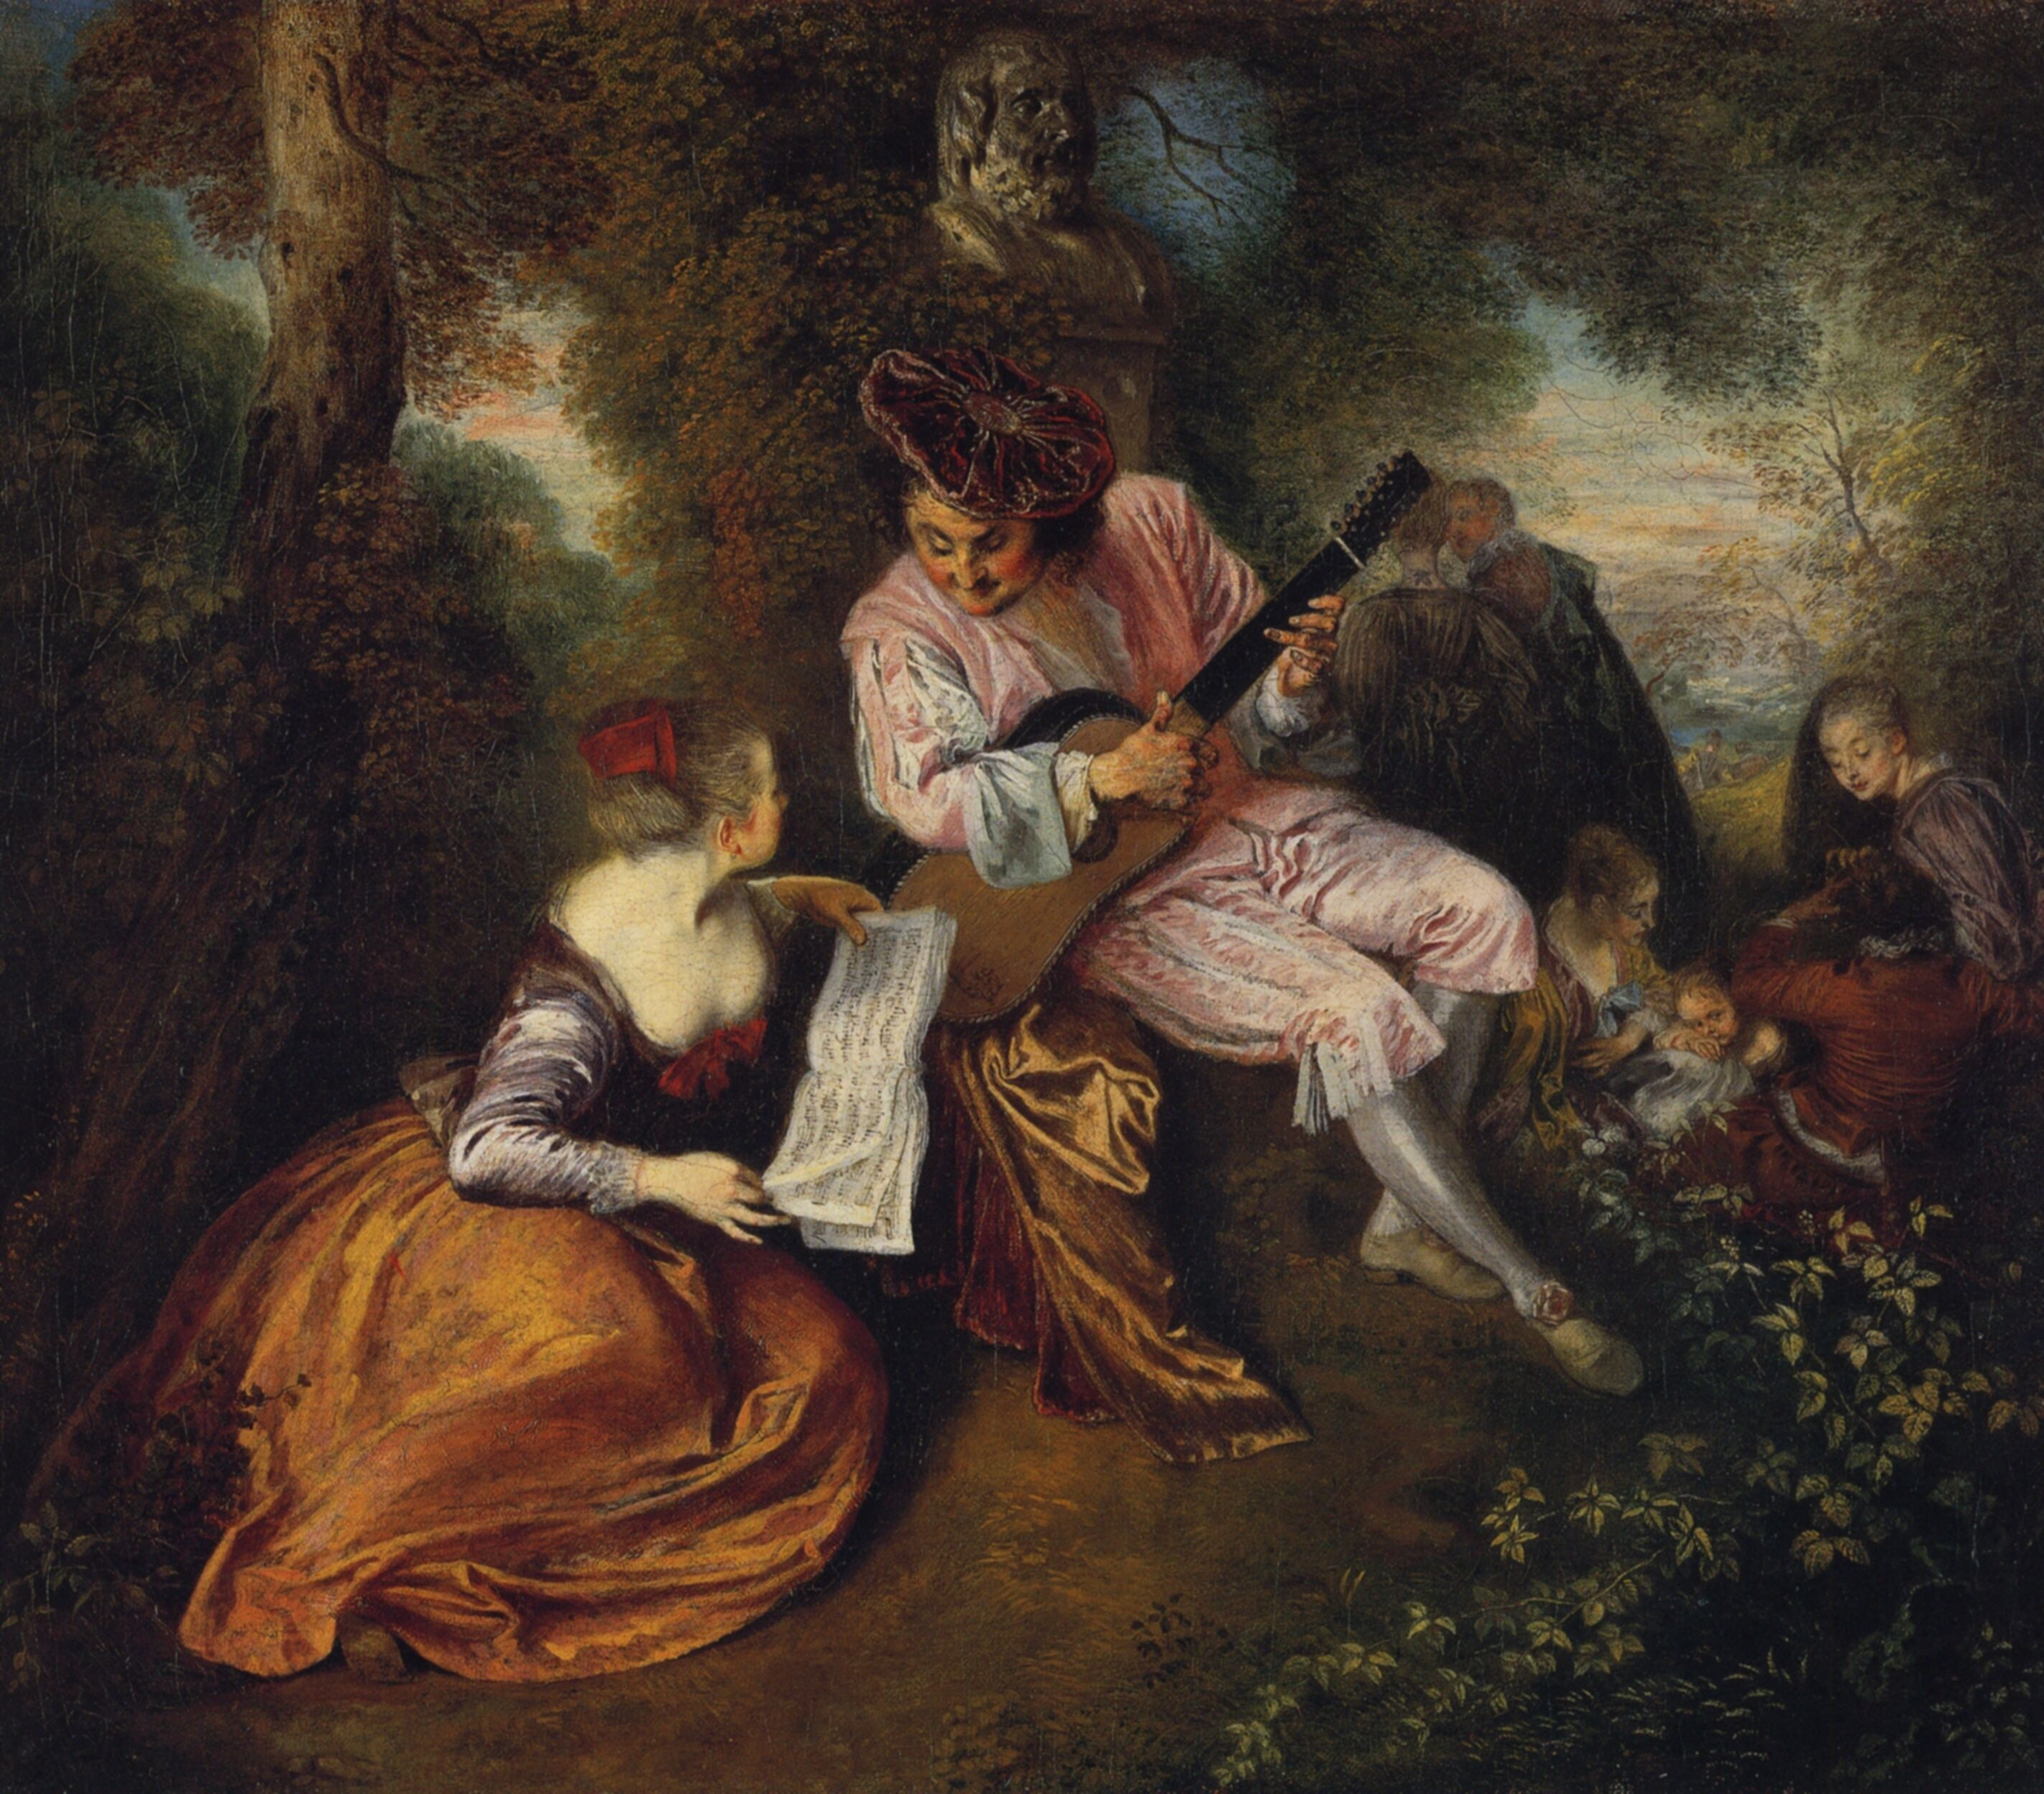 Jean-Honore Fragonard - The Scale of Love   Most famous paintings, Rococo art, Art